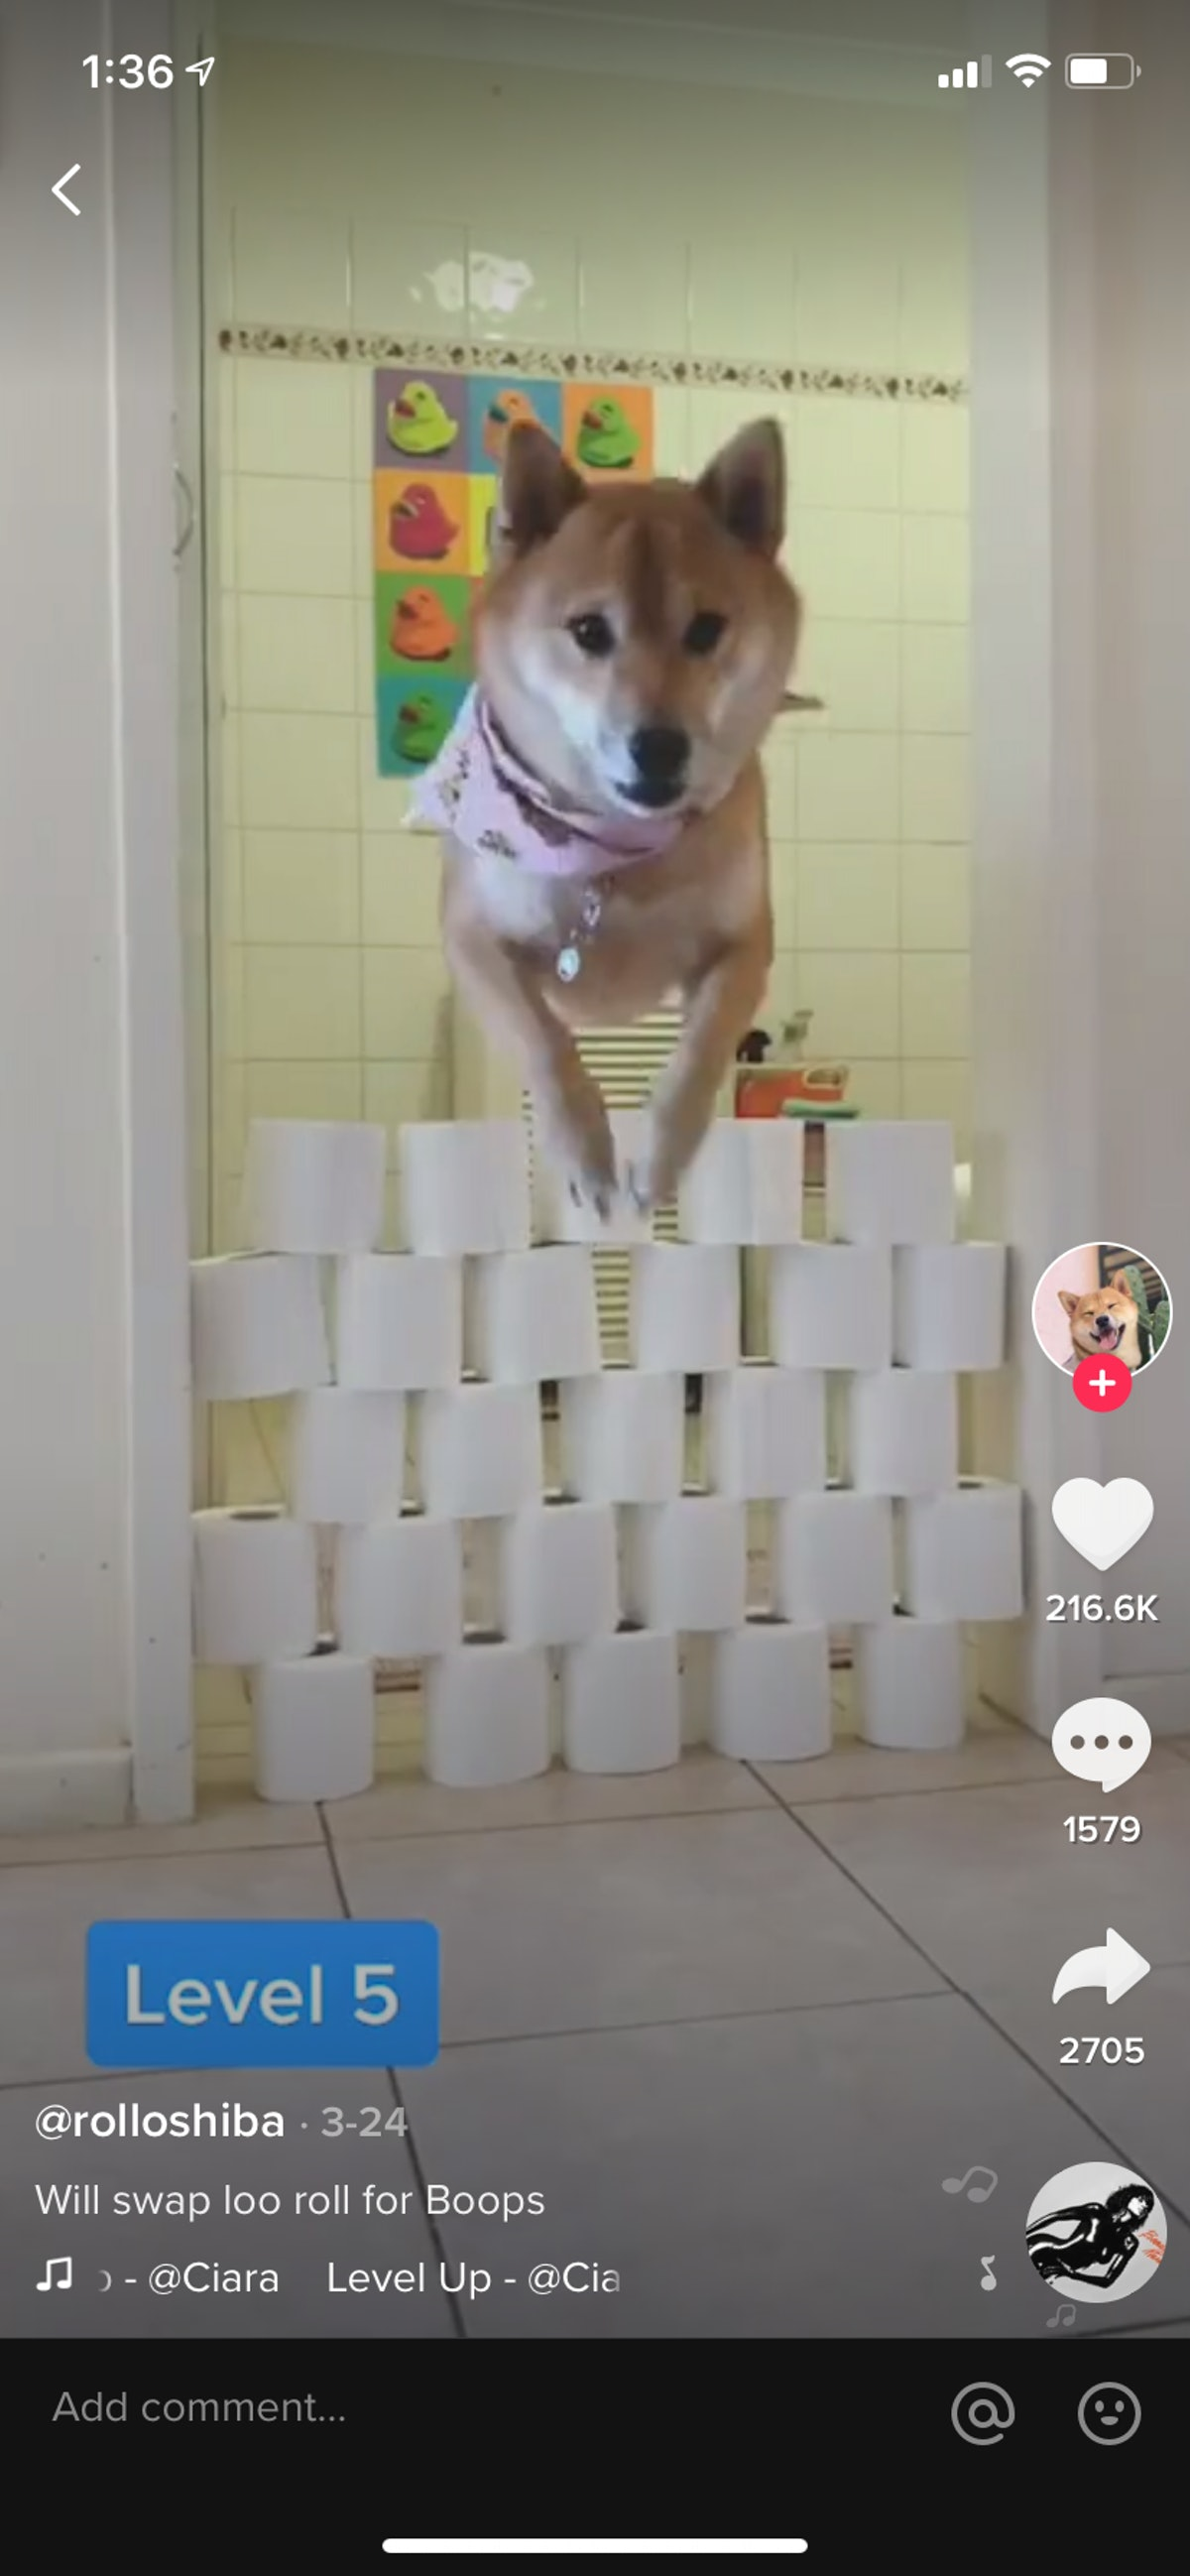 A dog leaps over a stack of toilet paper rolls for a TikTok challenge.